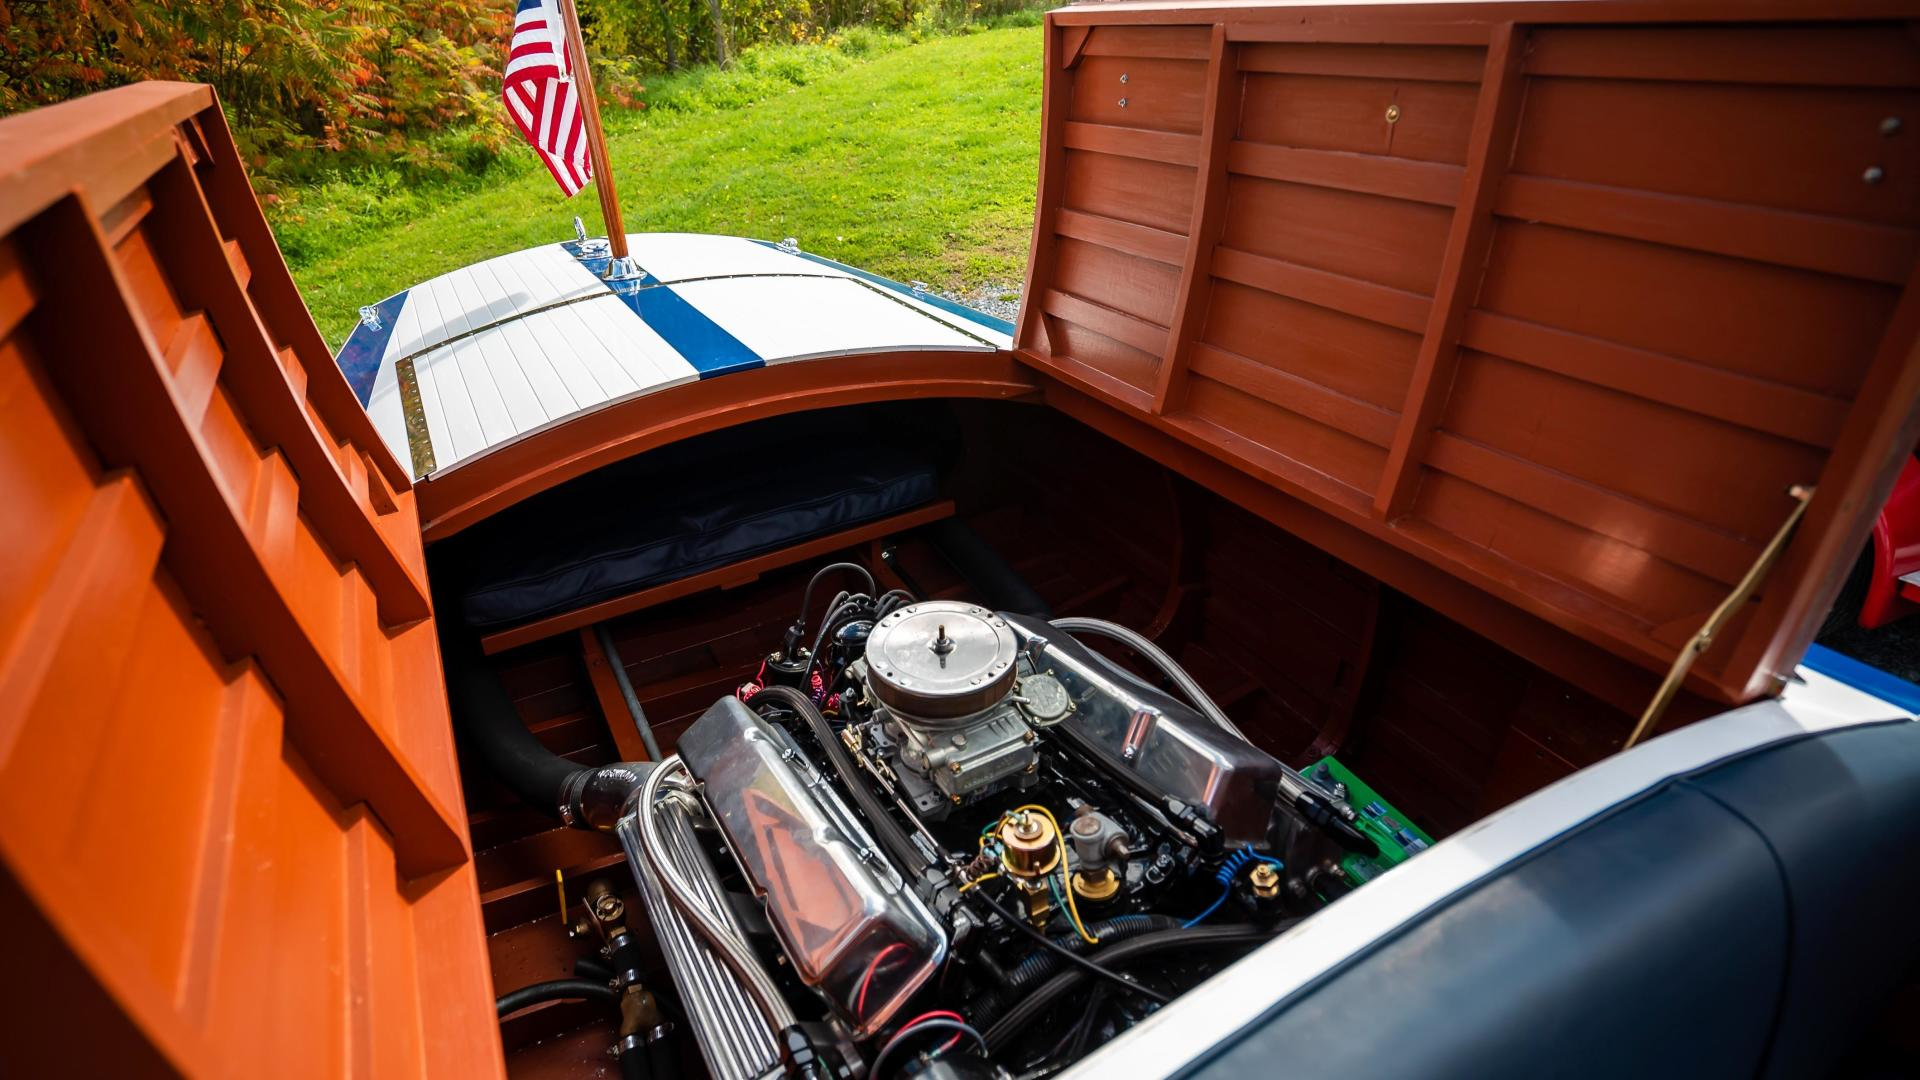 Chris-Craft-Special Race boat 1937 -Clayton-New York-United States-1546482 | Thumbnail